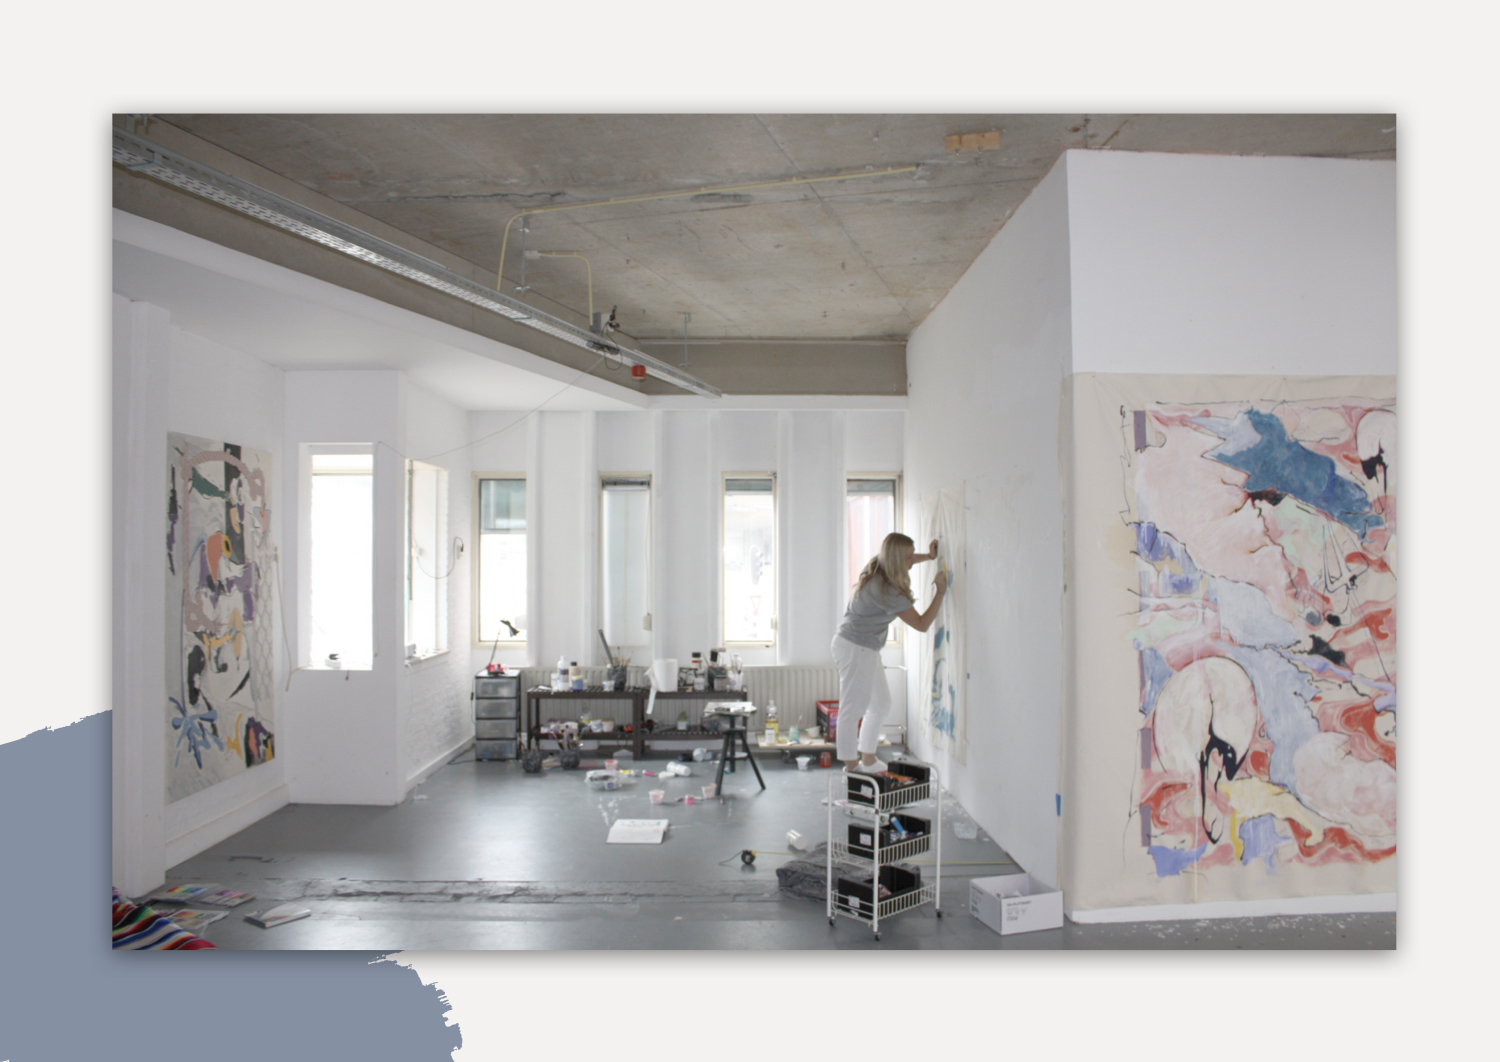 Meg Forsyth painting in her studio in the Netherlands